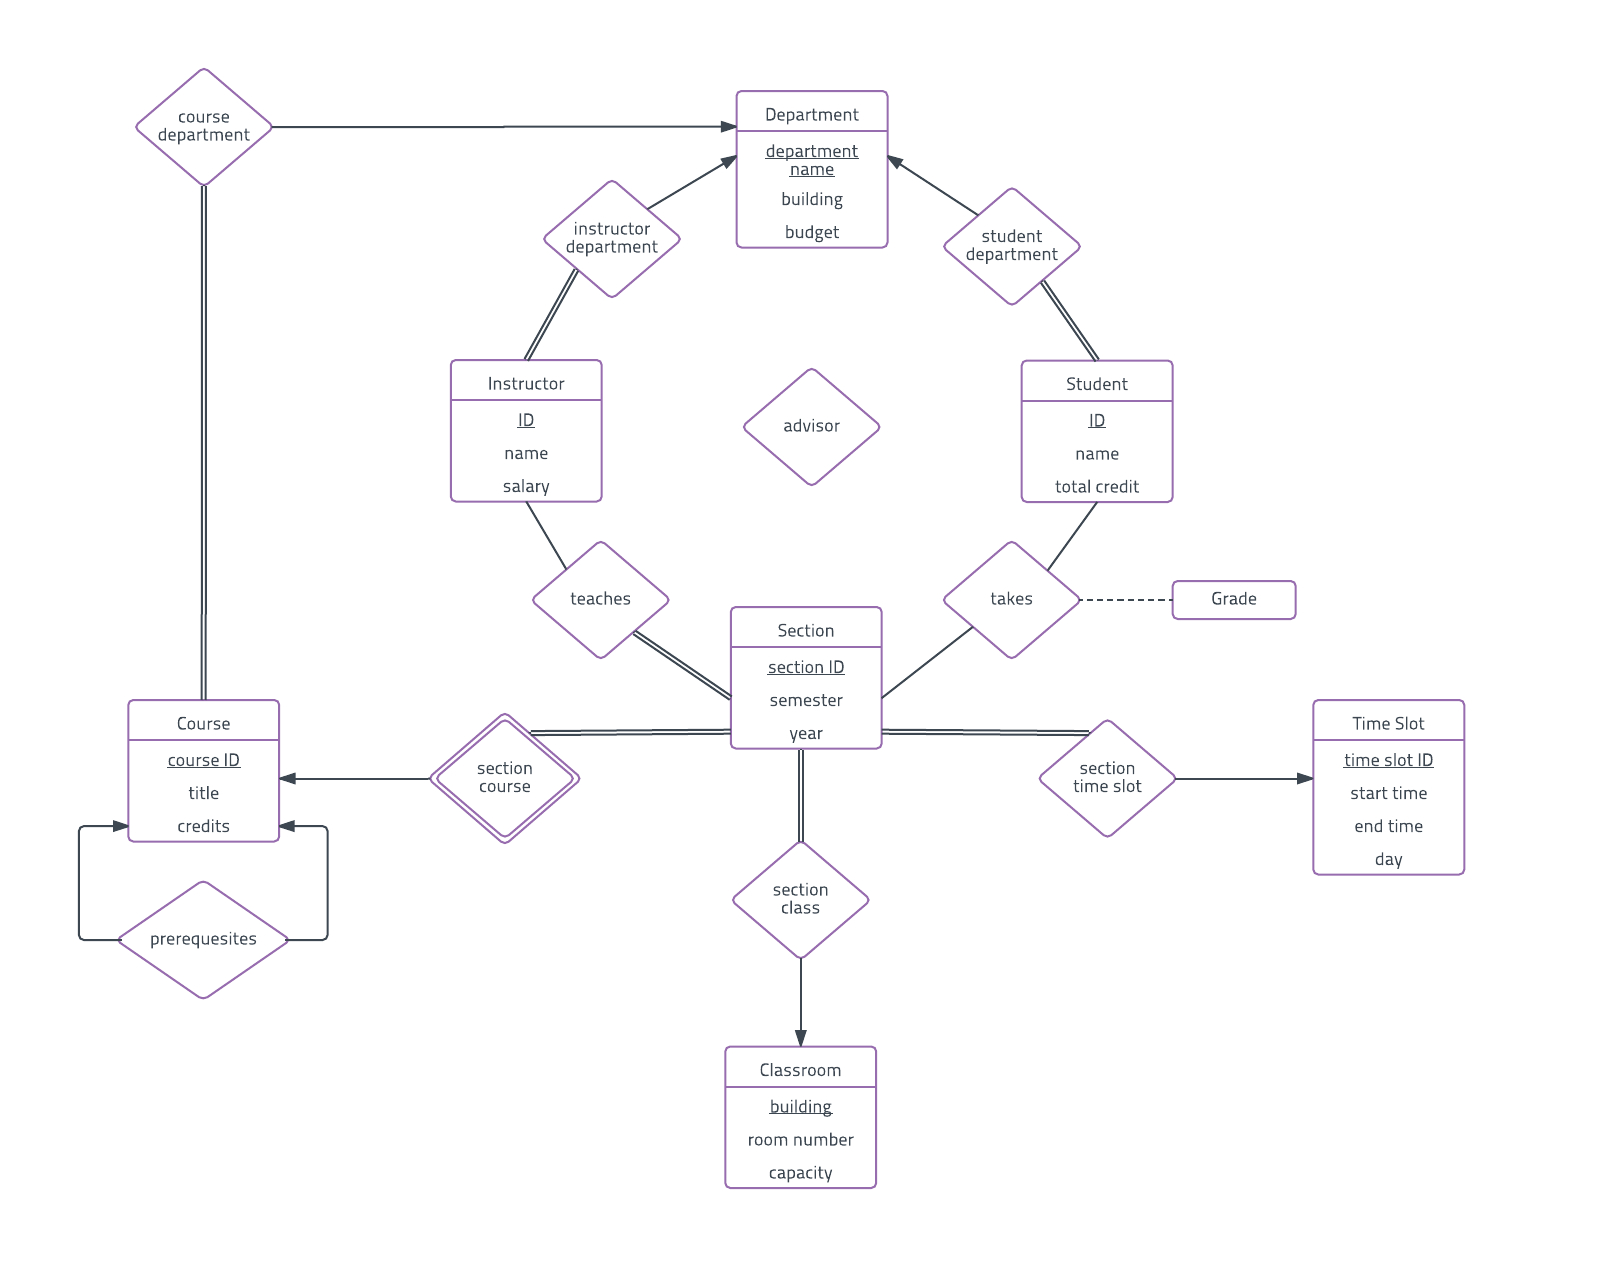 Er Diagram Examples And Templates | Lucidchart with regard to Eer Diagram Examples With Solutions